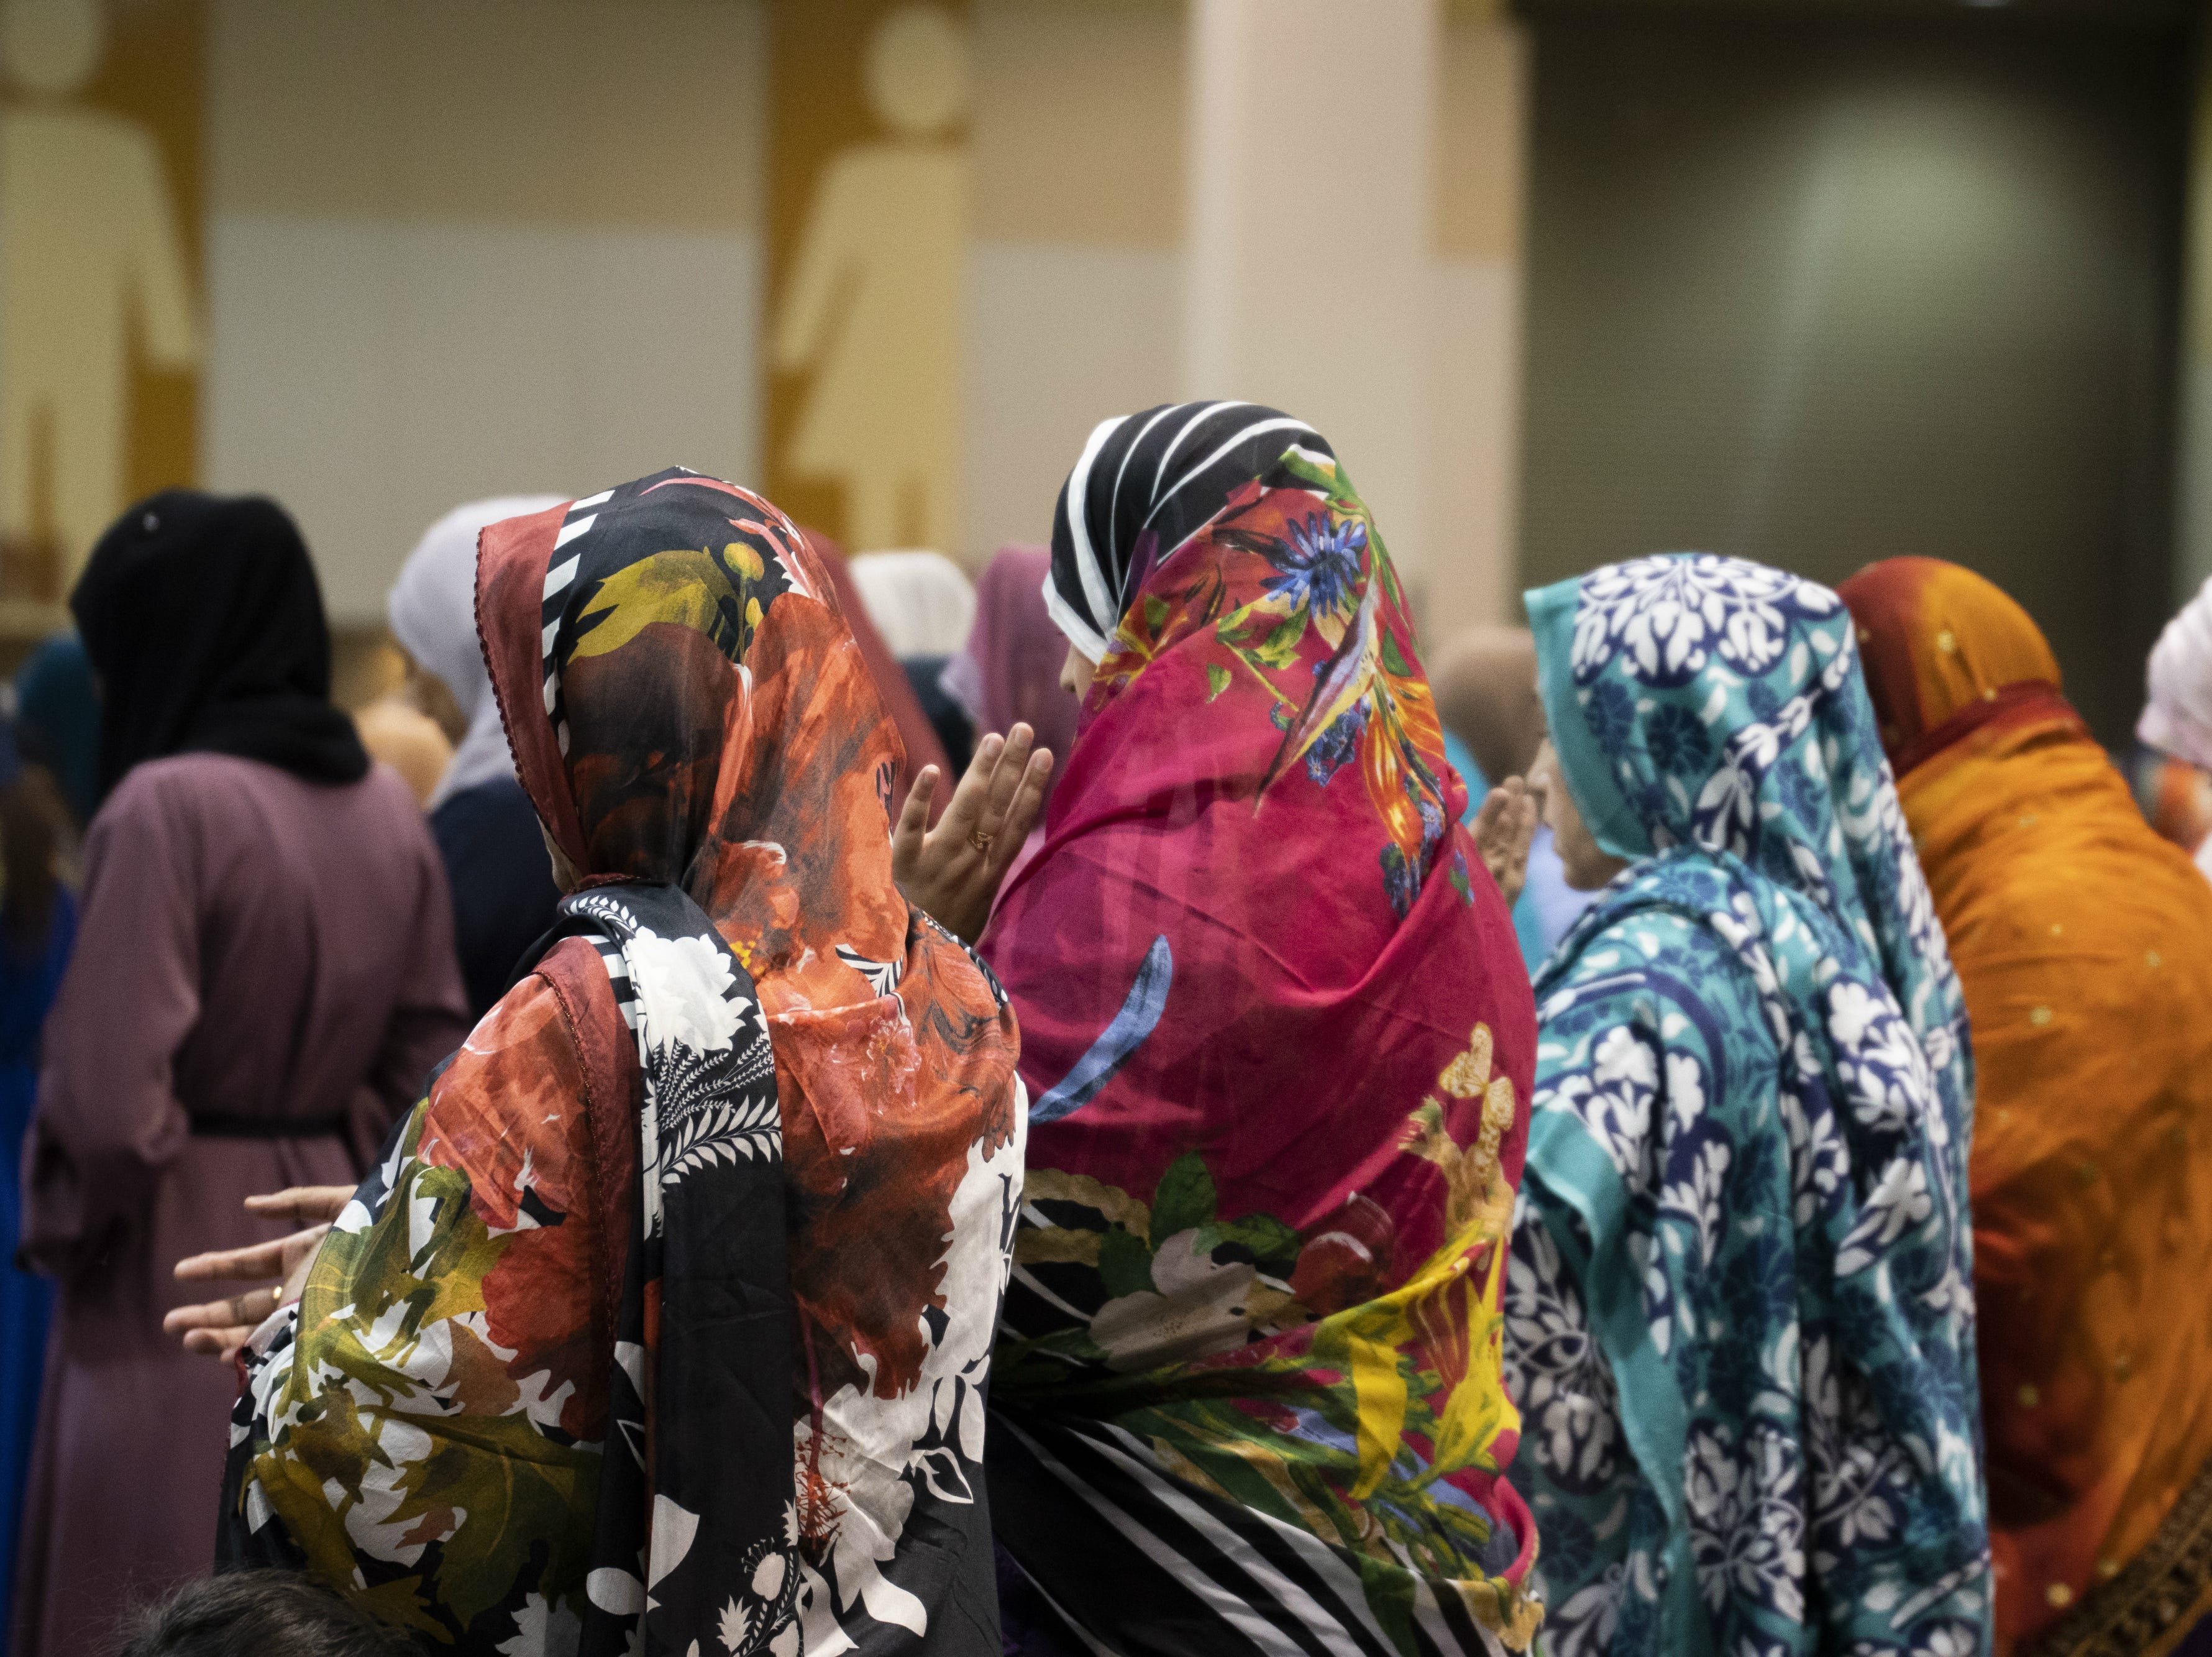 Women in colorful hijabs pray during an Eid celebration on Aug. 21, 2018, in Phoenix.